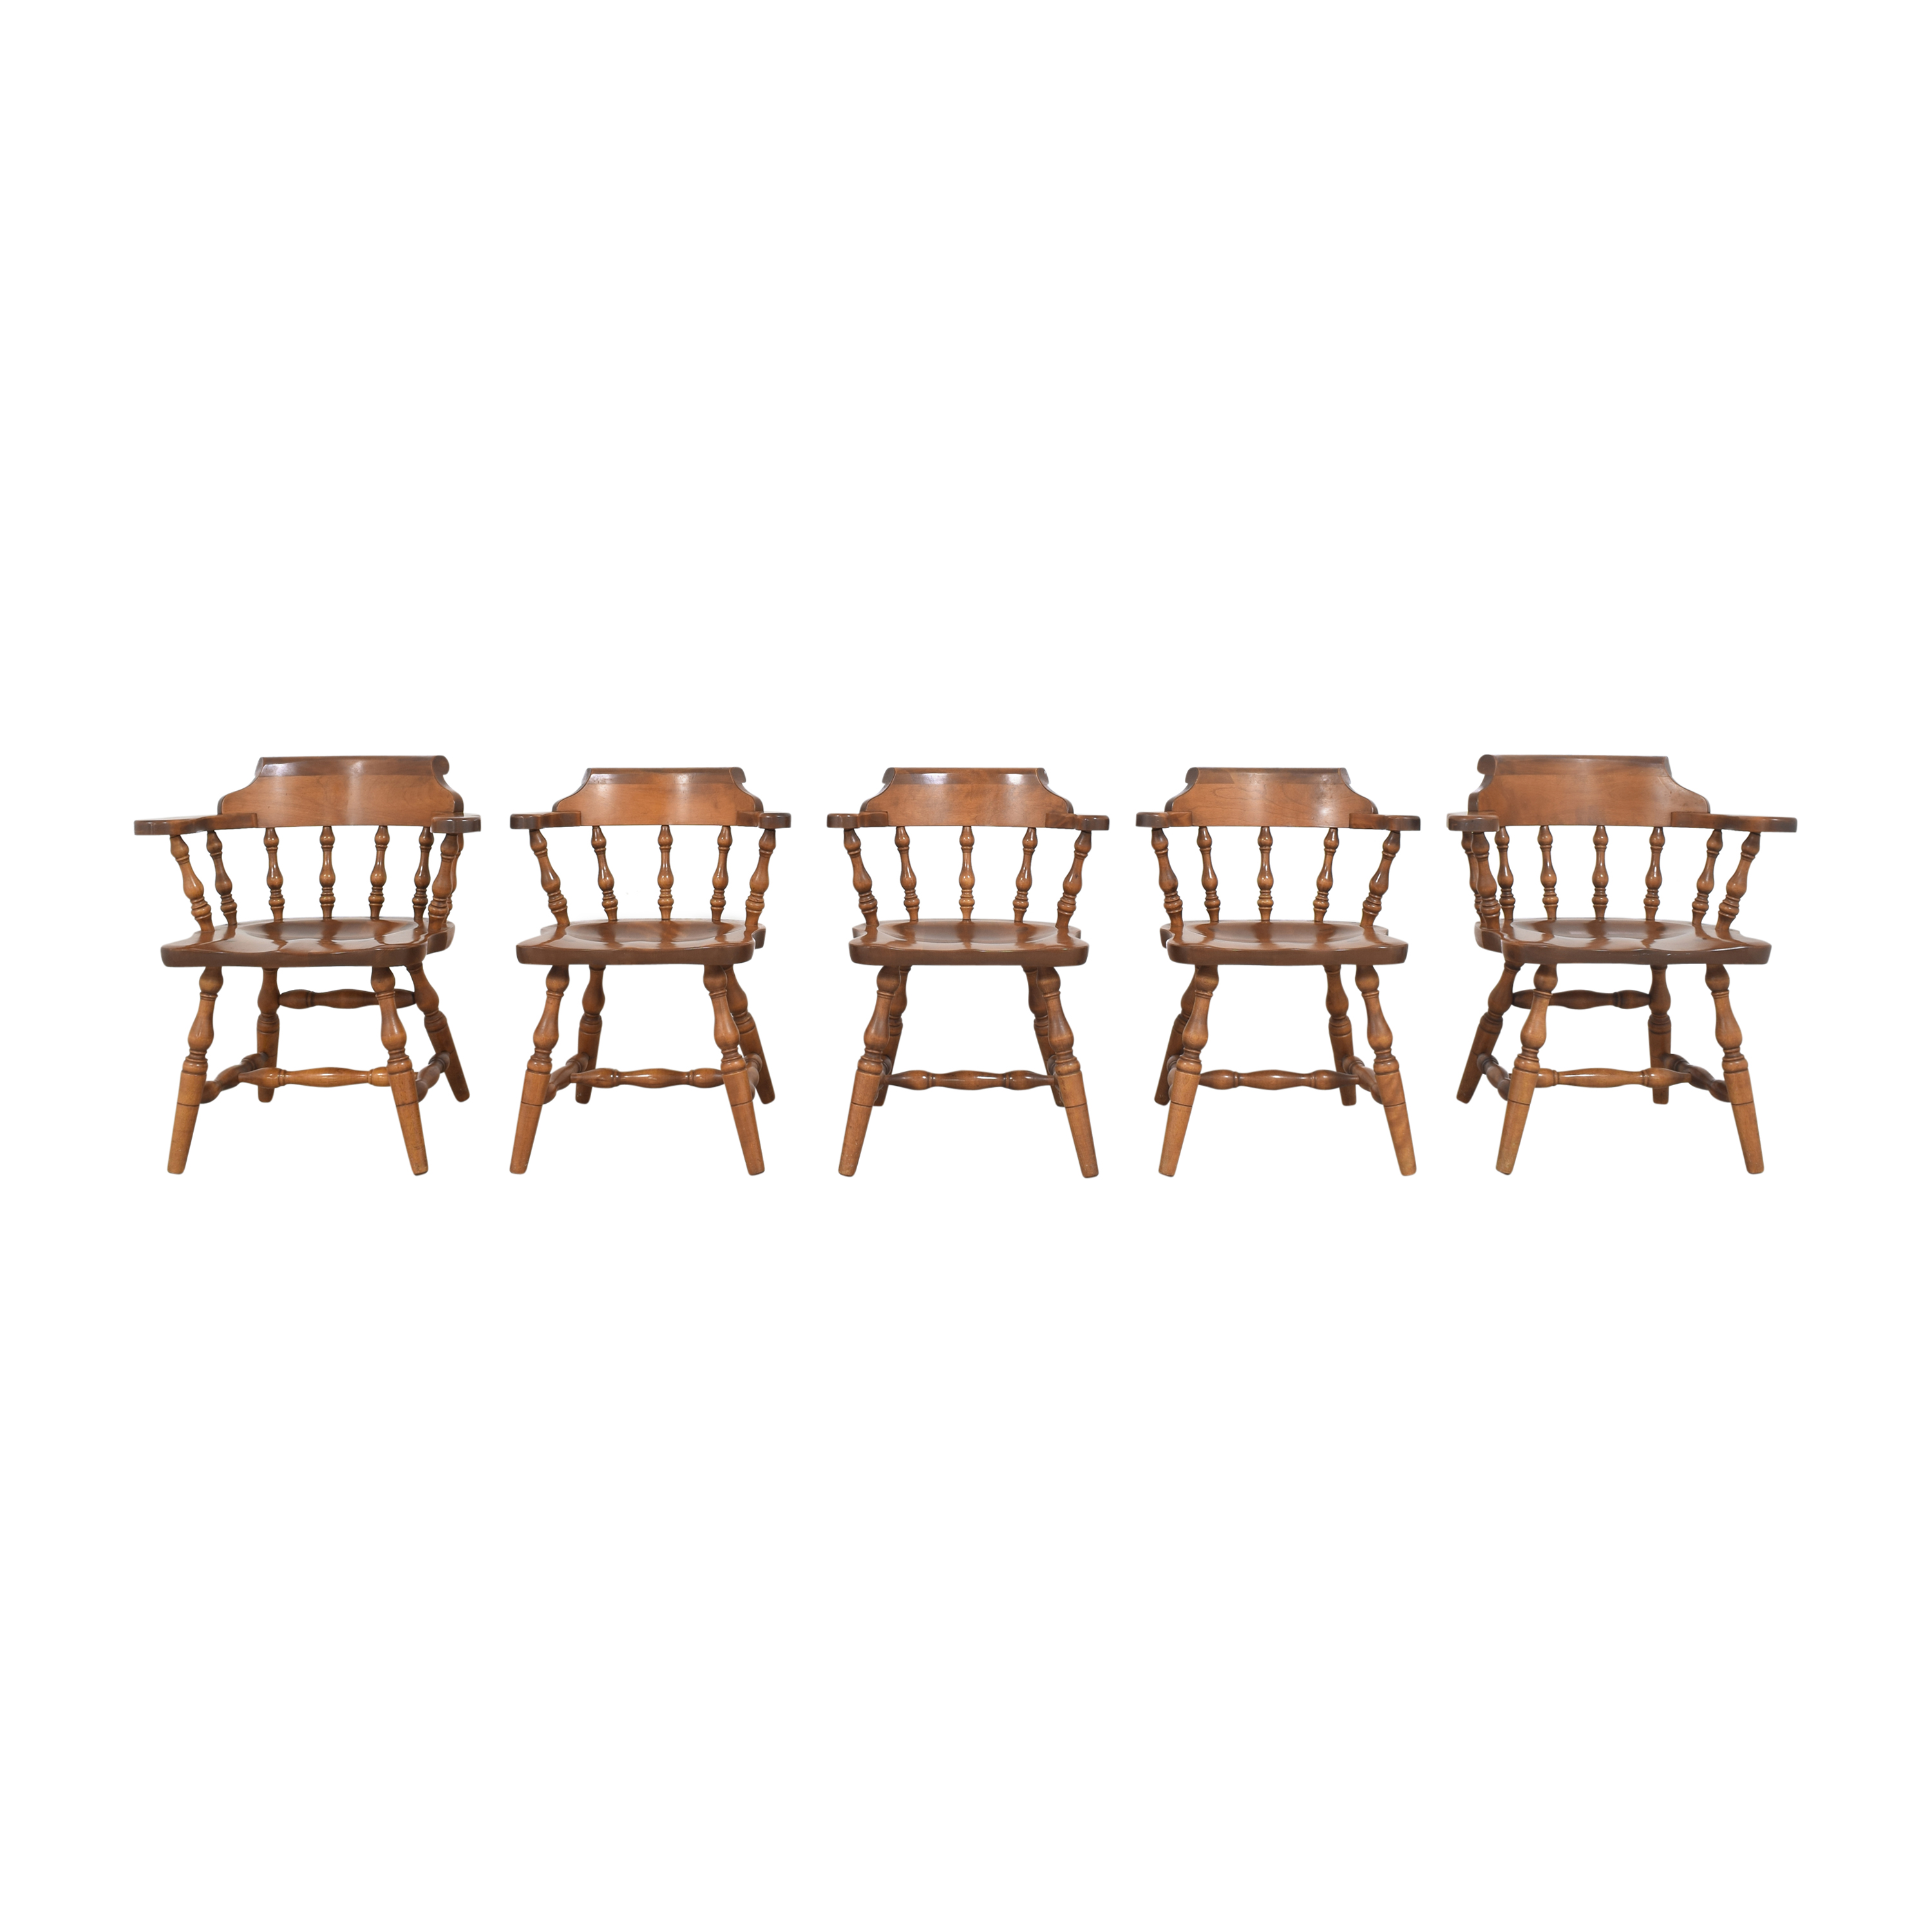 S. Bent & Bros S. Bent & Bros Colonial Windsor Captain's Chairs nyc